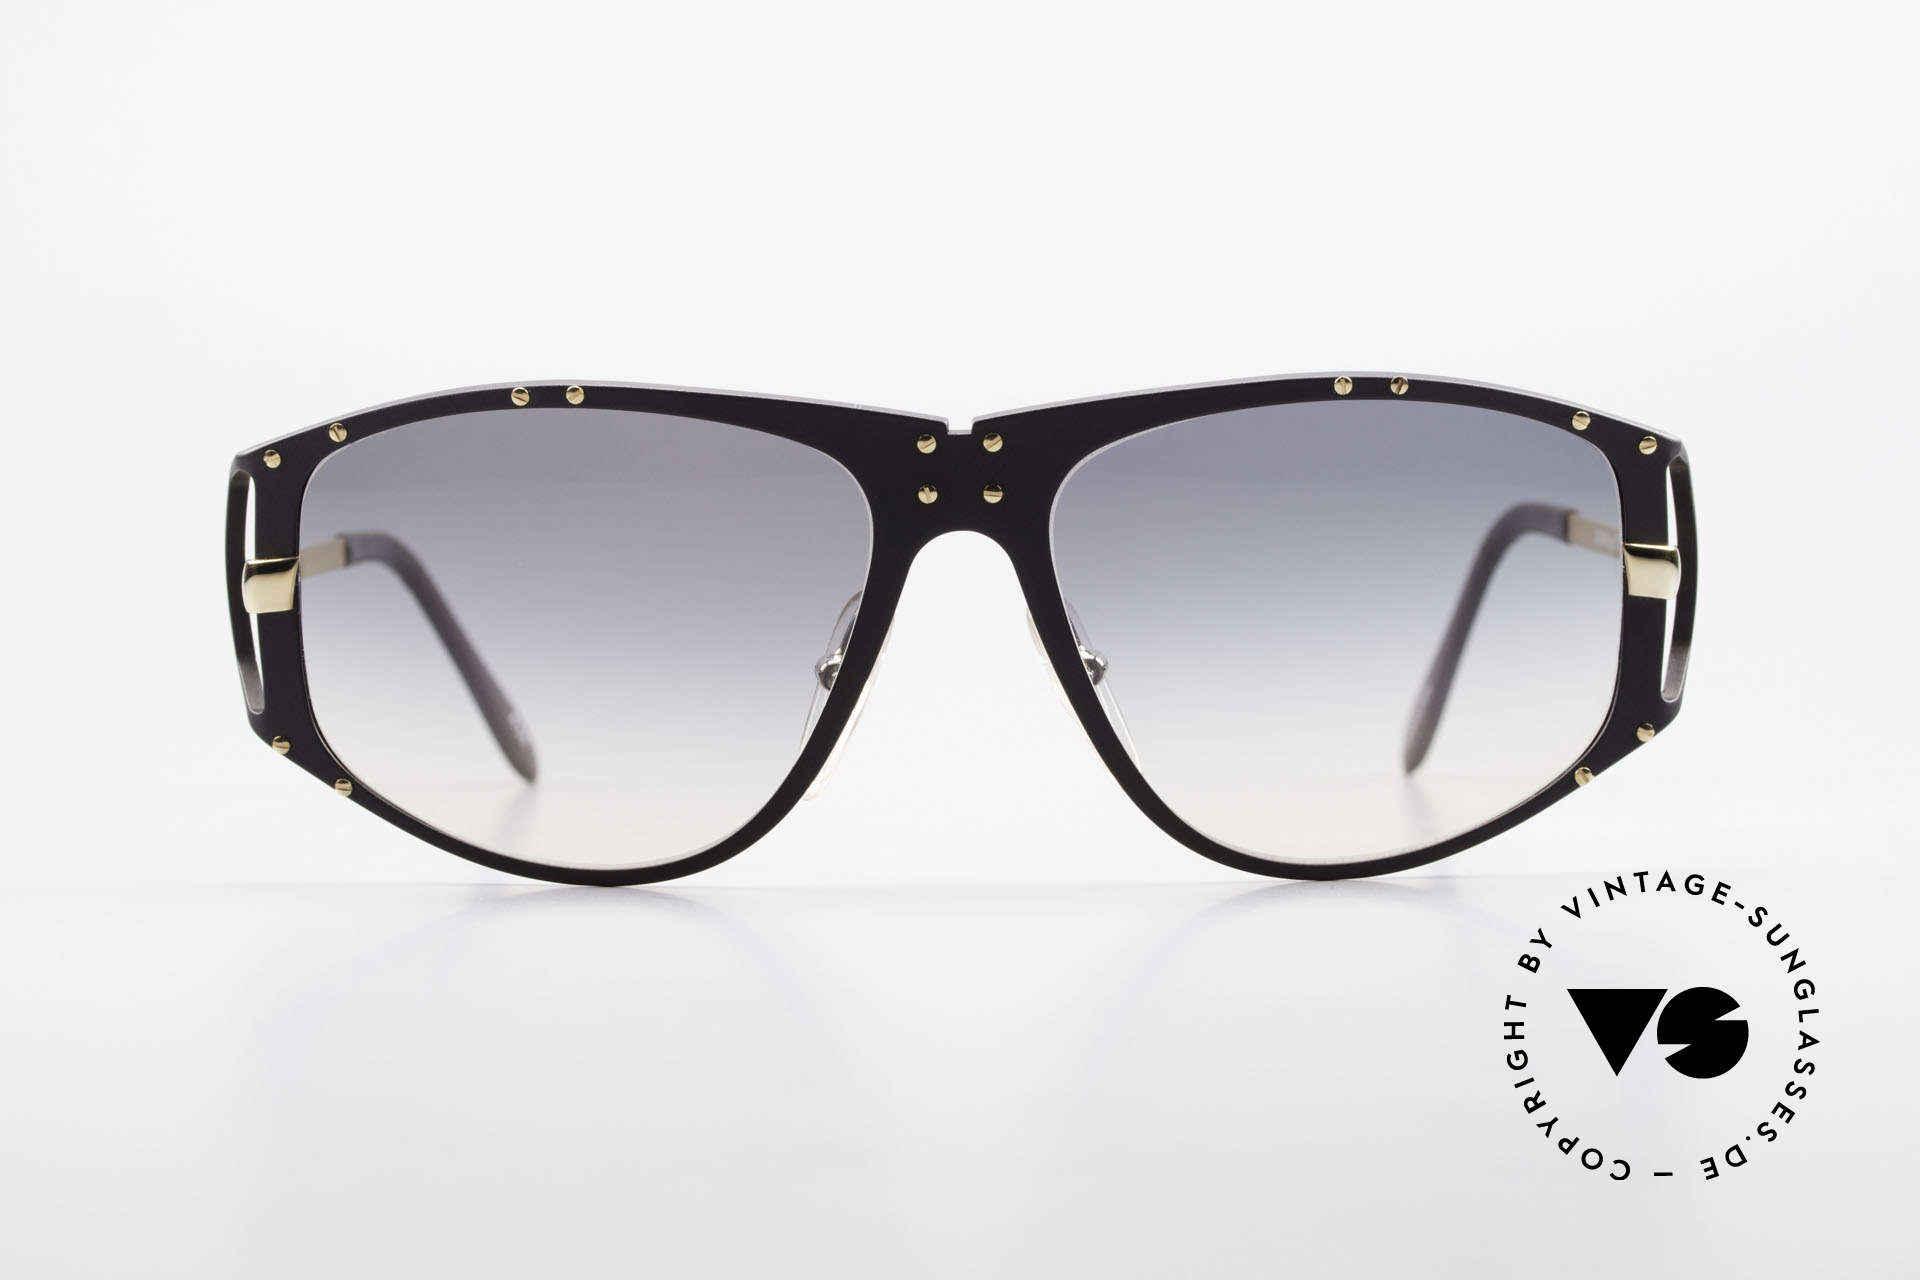 Alpina A51 Ultra Rare 90's XL Sunglasses, produced a bit later than the legendary Alpina M1, Made for Men and Women